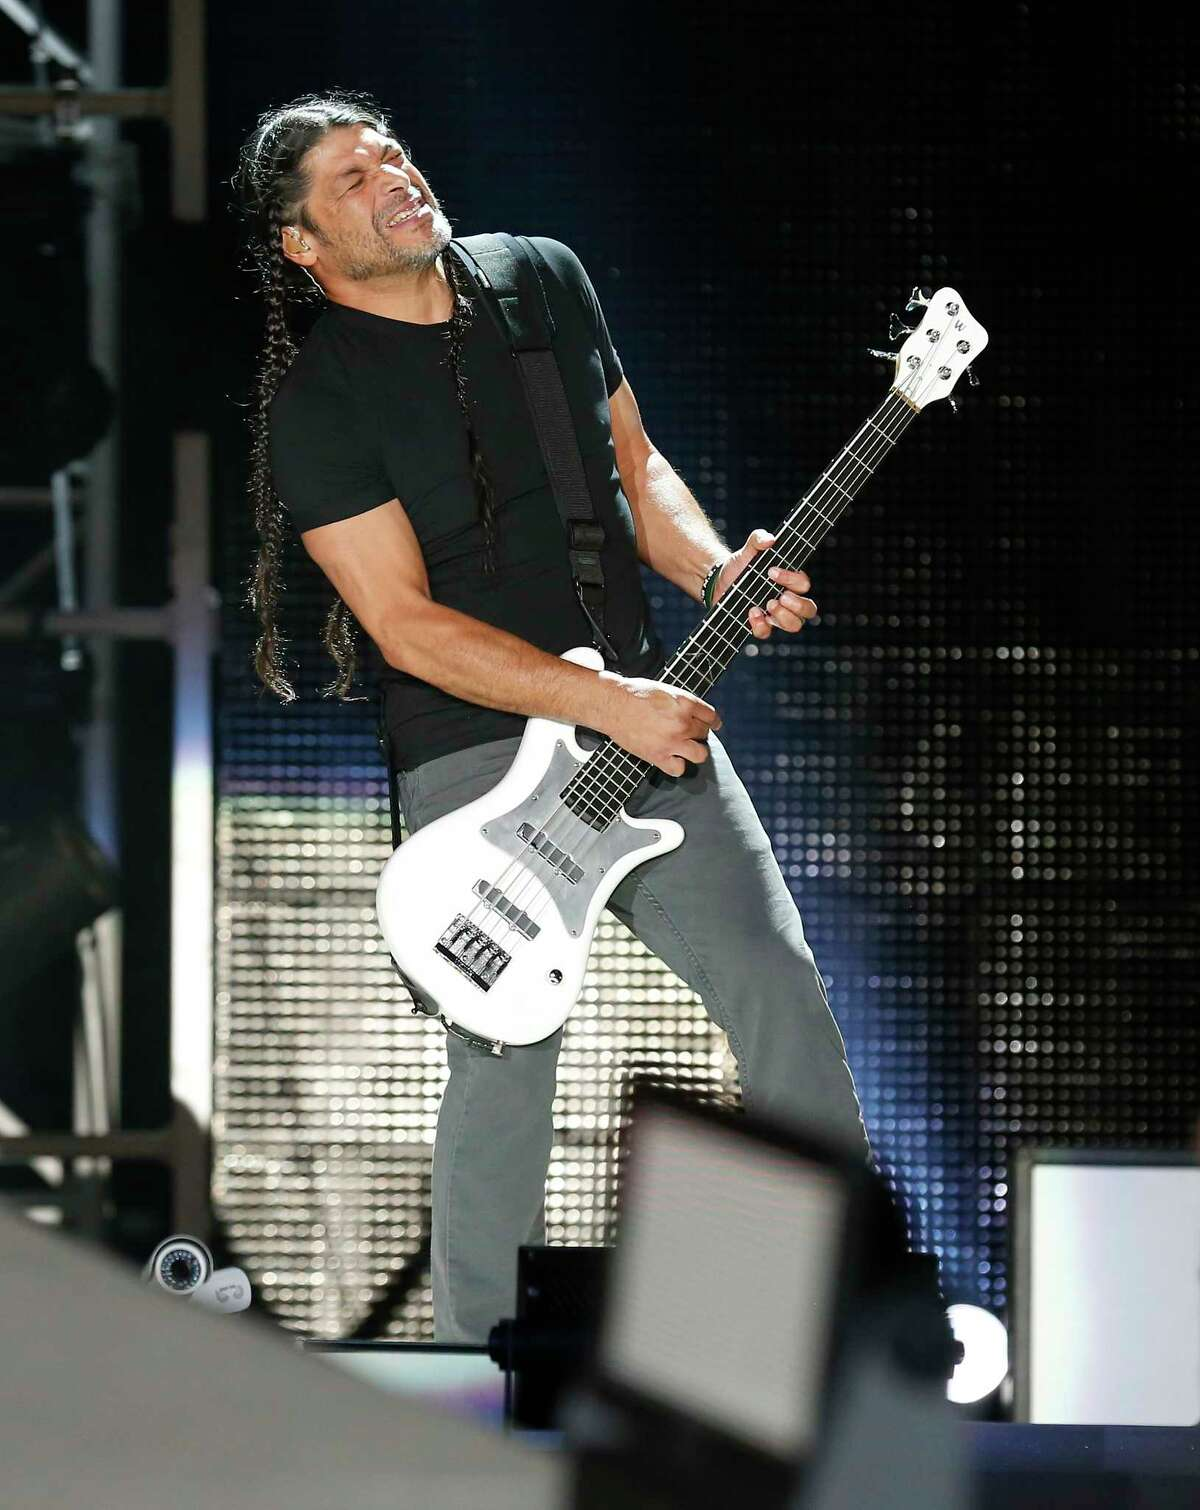 Metallica performs at the Alamodome as part of their North American WorldWired Tour on Wednesday, June 14, 2017. Band members Robert Trujillo (pictured) along with James Hatfield, Lars Ulrich and Kirk Hammett rocked the Alamodome crowd into a frenzy as they kicked off the show with a short video rendition of The Unforgiven then the band roared with Hardwired followed with Atlas, Rise! and then For Whom the Bell Tolls.